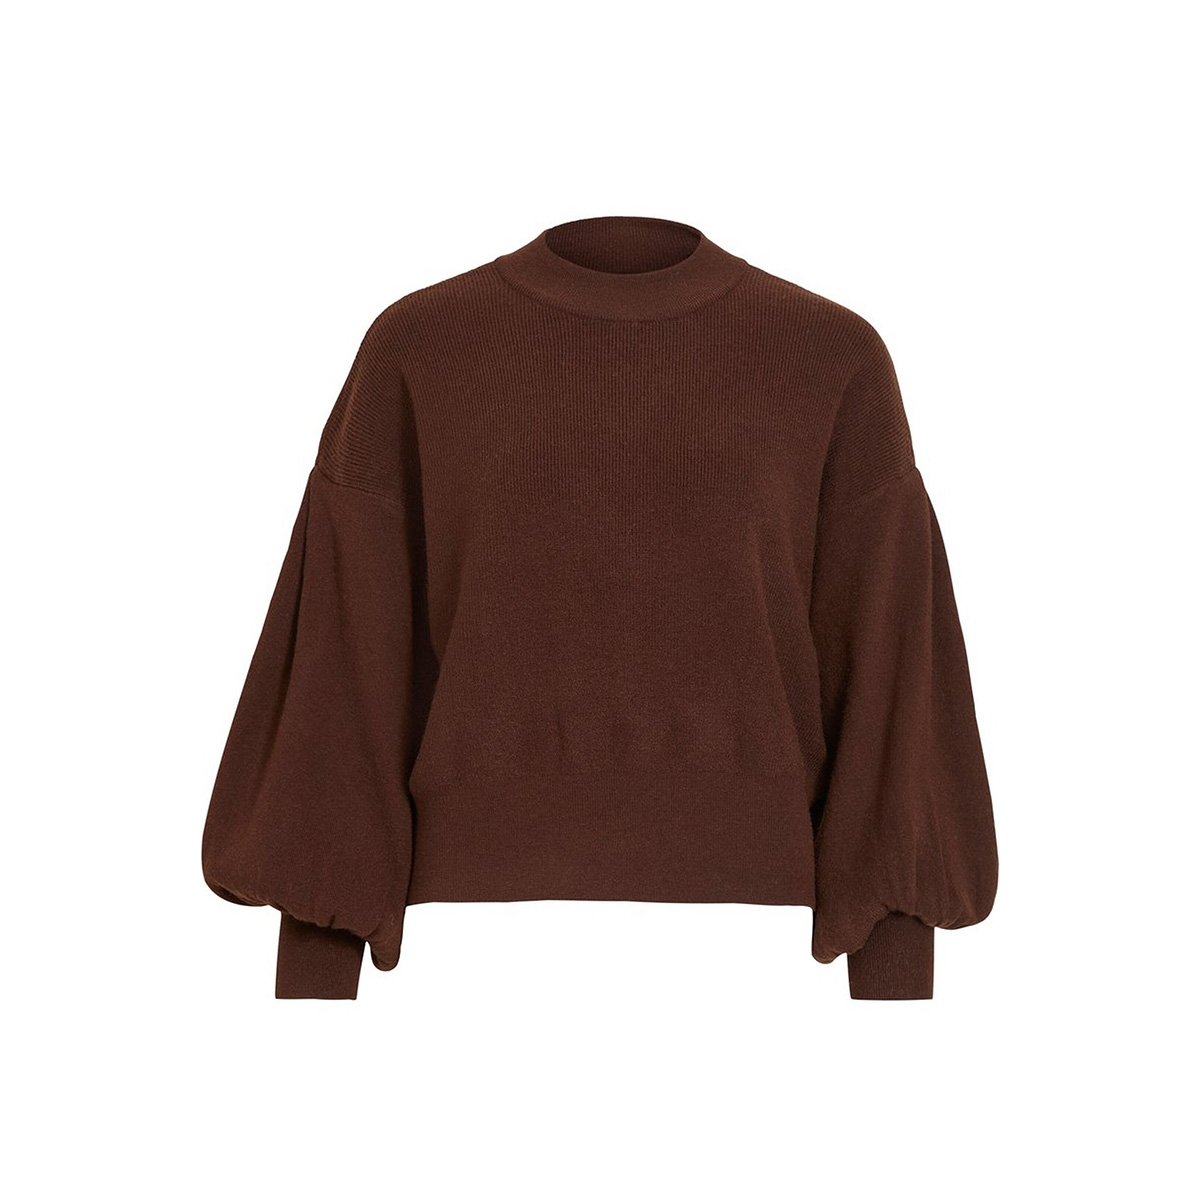 objlale l/s knit pulover a lmt 11 23033538 object trui chicory coffee